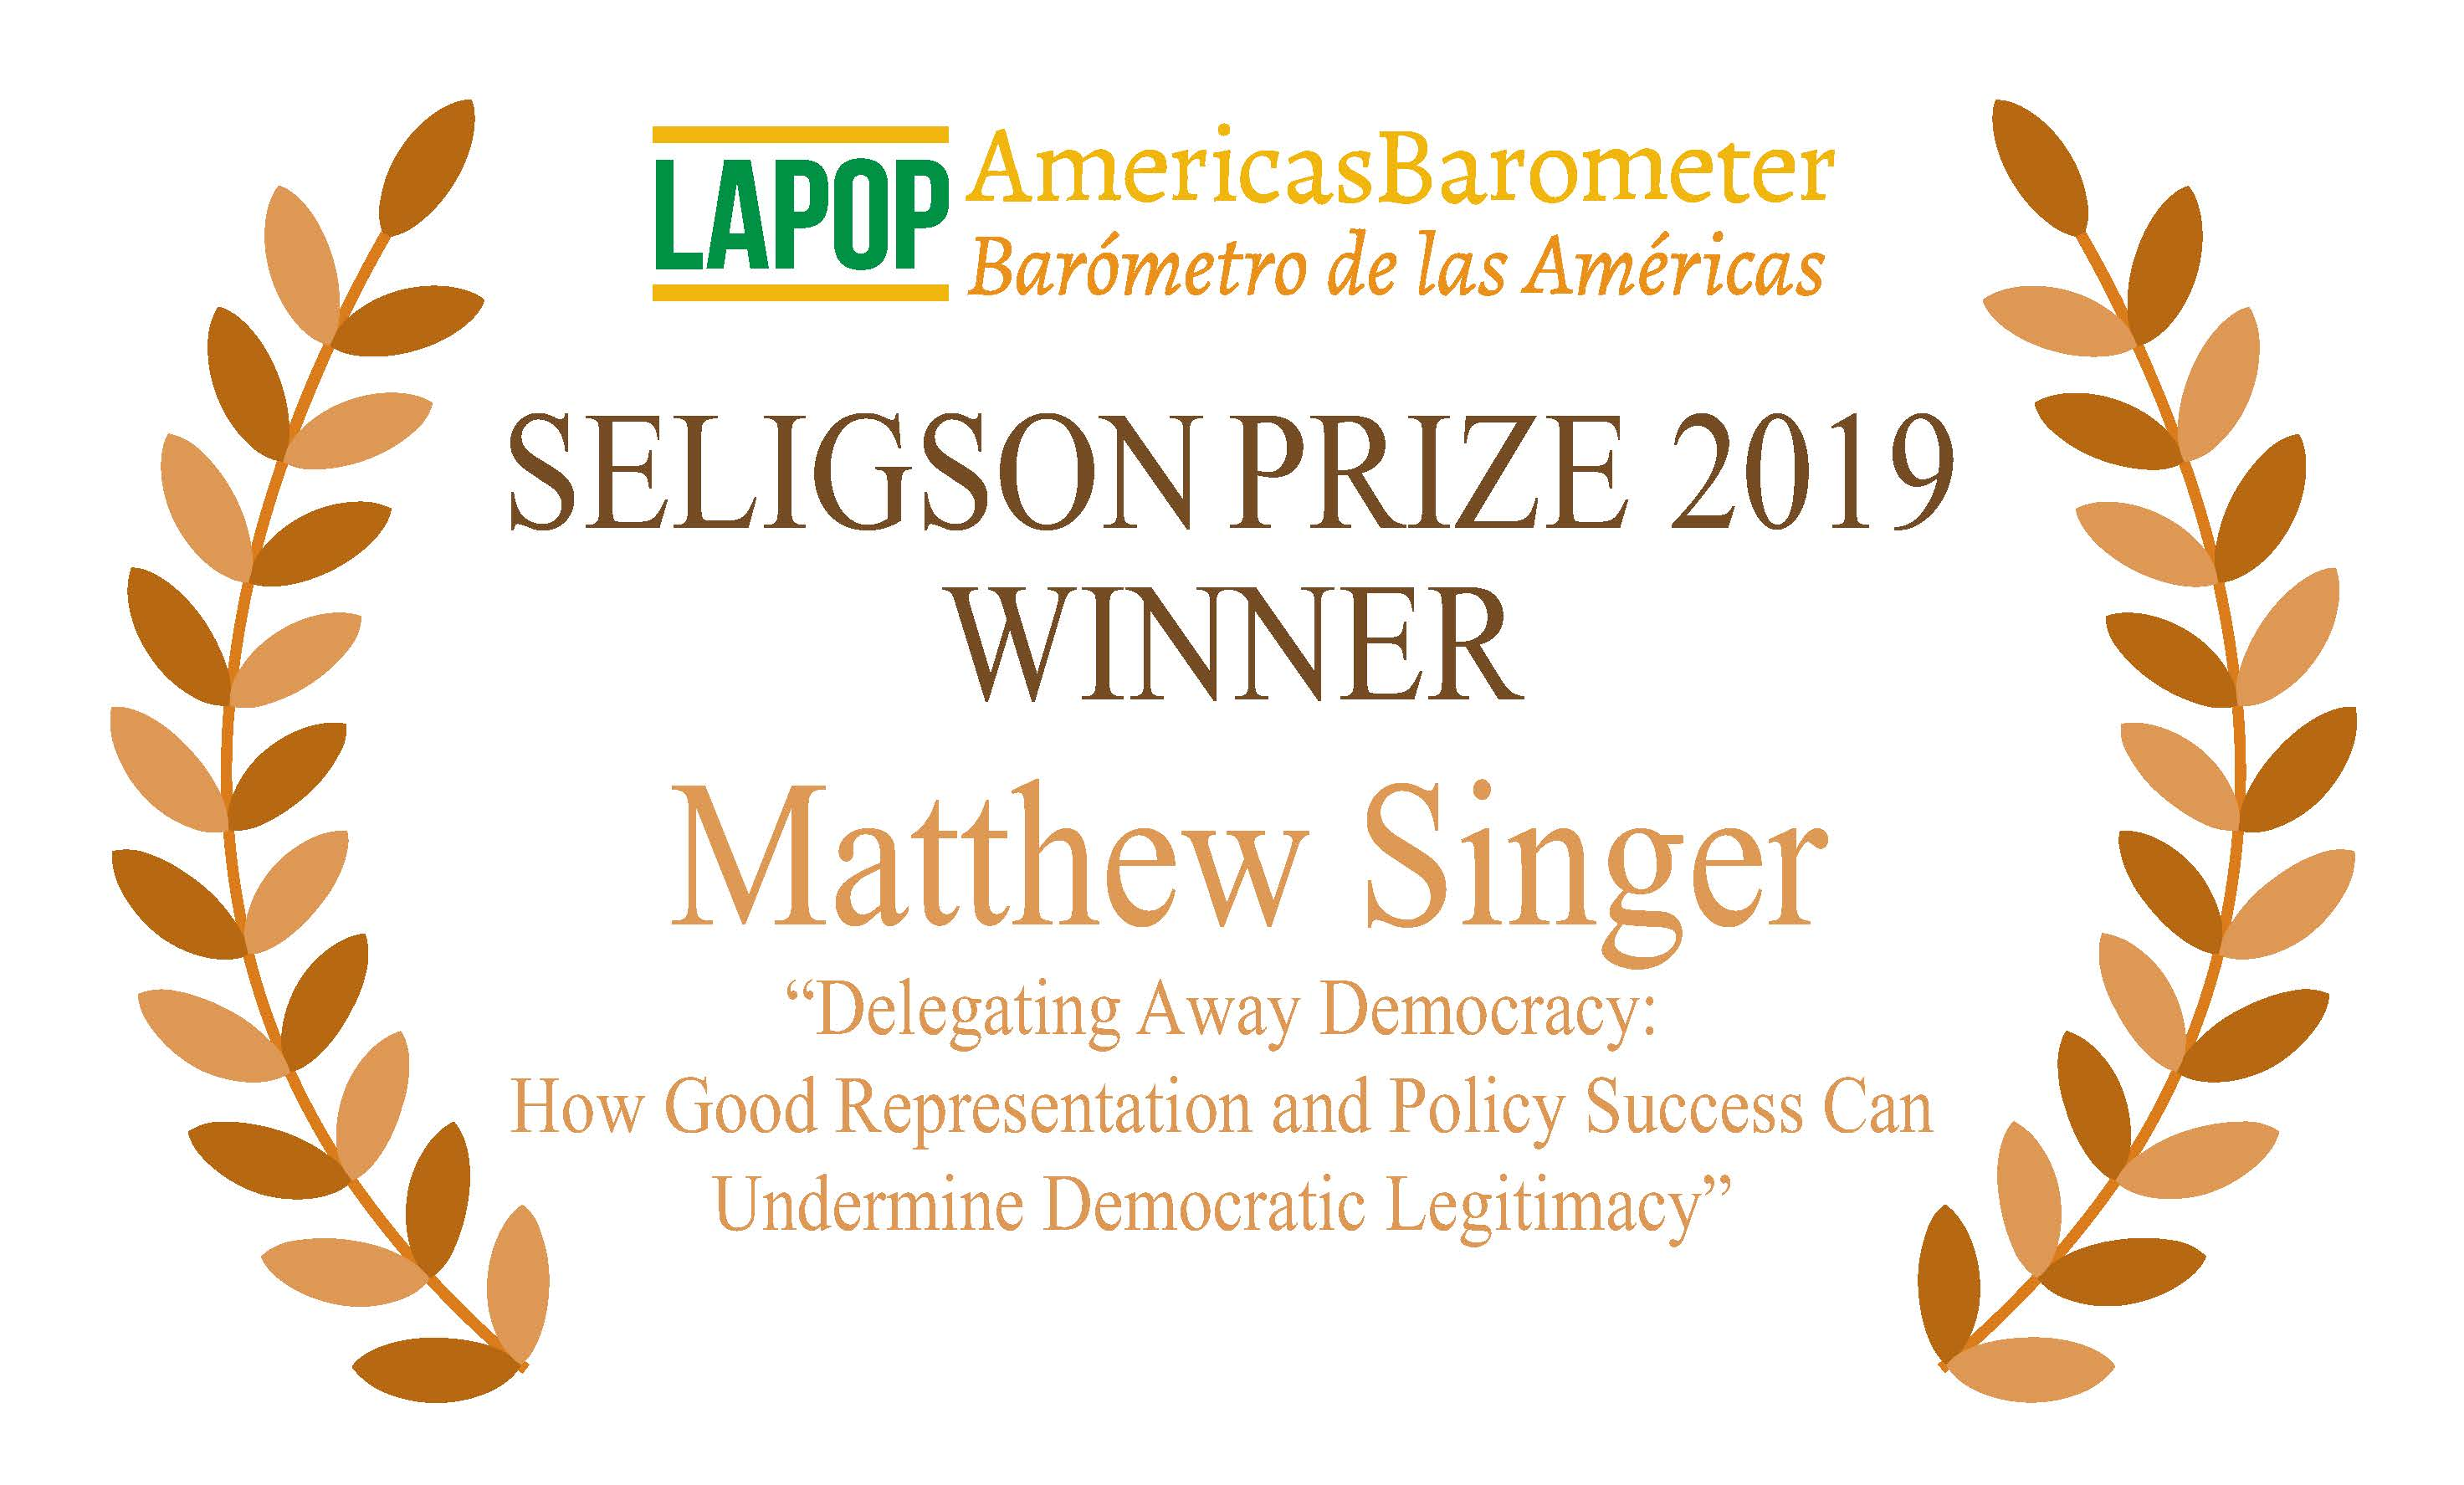 LAPOP is pleased to announce the winner of this year's Seligson Prize. Click for the full announcement.